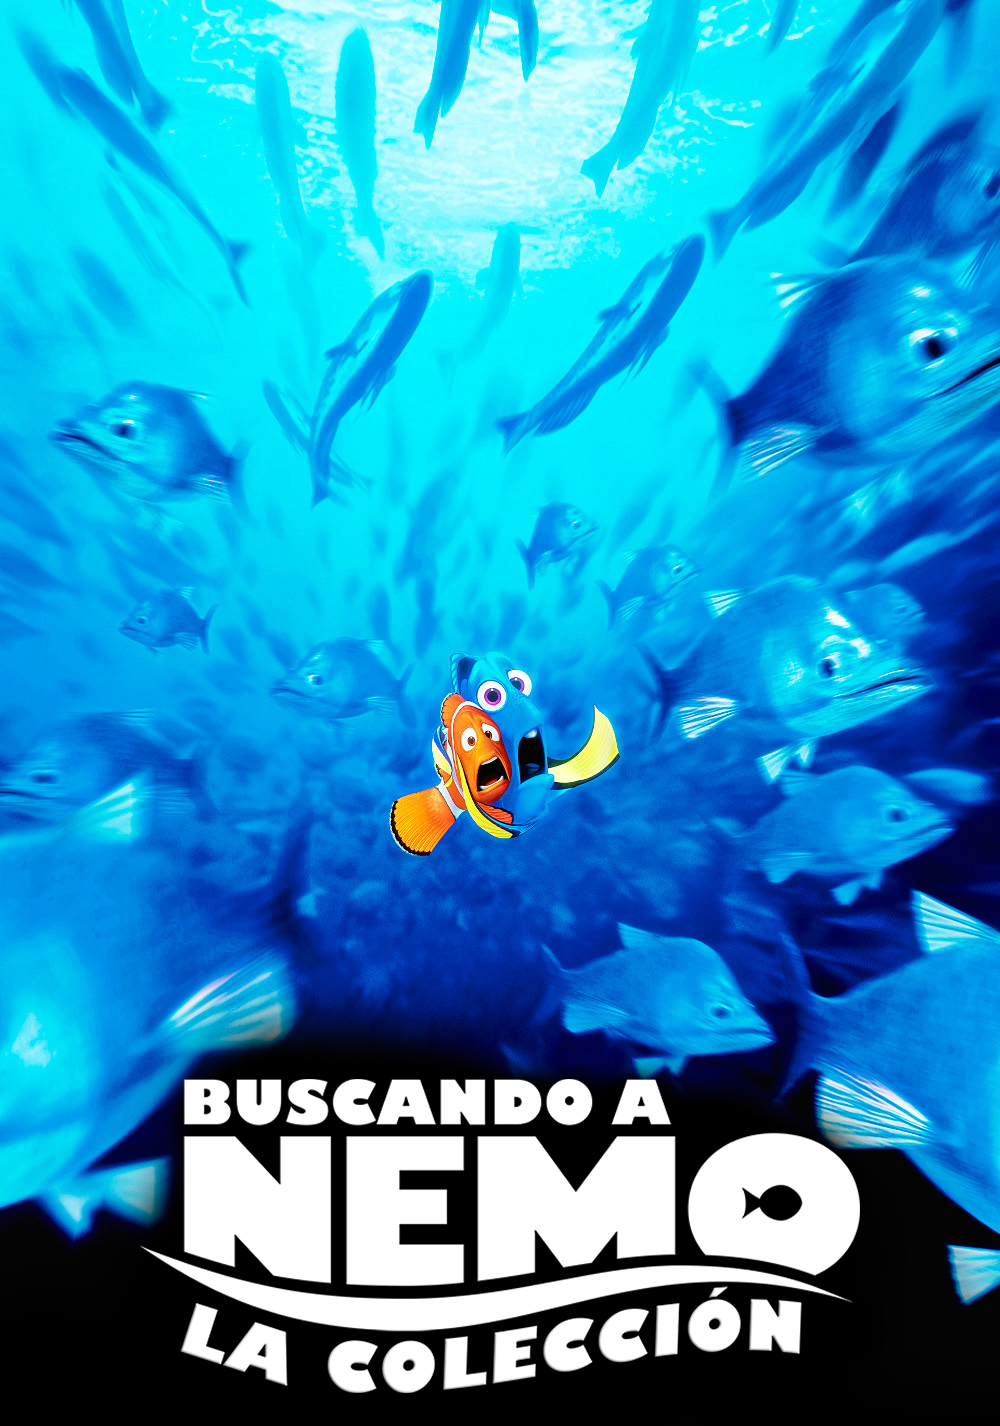 Finding nemo collection movie fanart fanart 6 thecheapjerseys Images